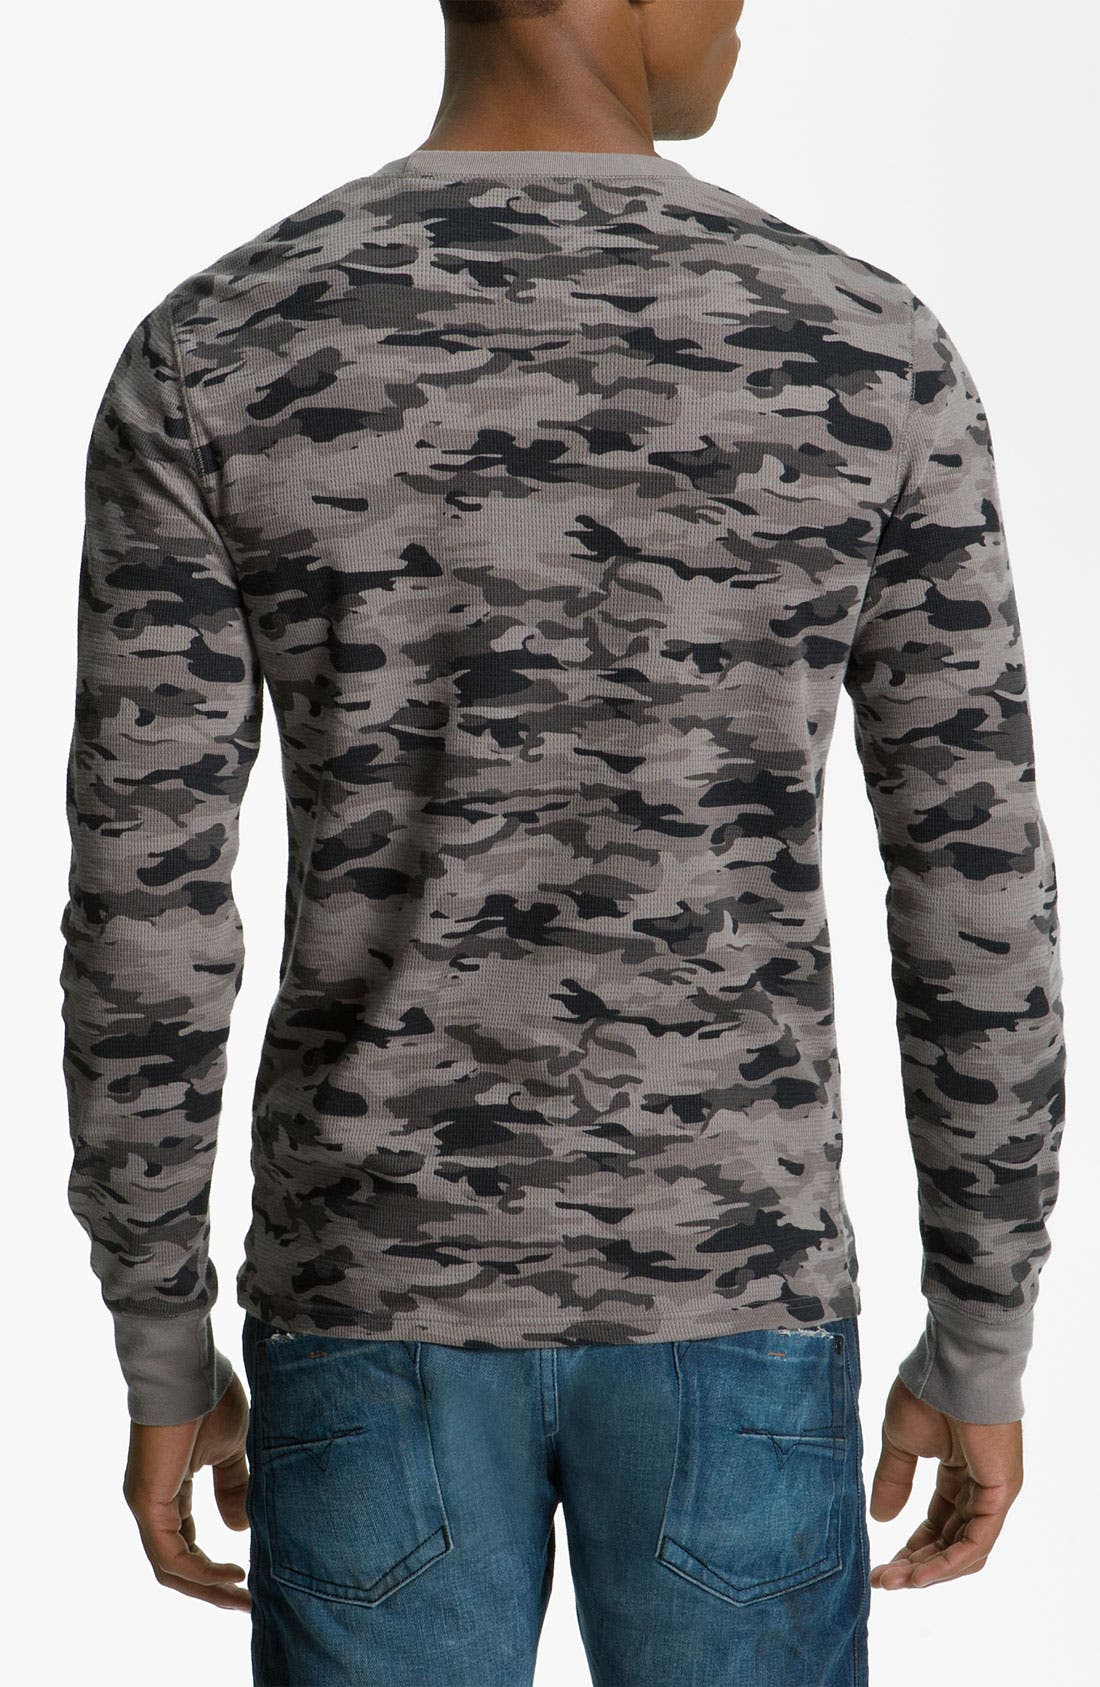 The Rail by Public Opinion Camo Thermal Shirt,                             Alternate thumbnail 2, color,                             Tonal Black Camo